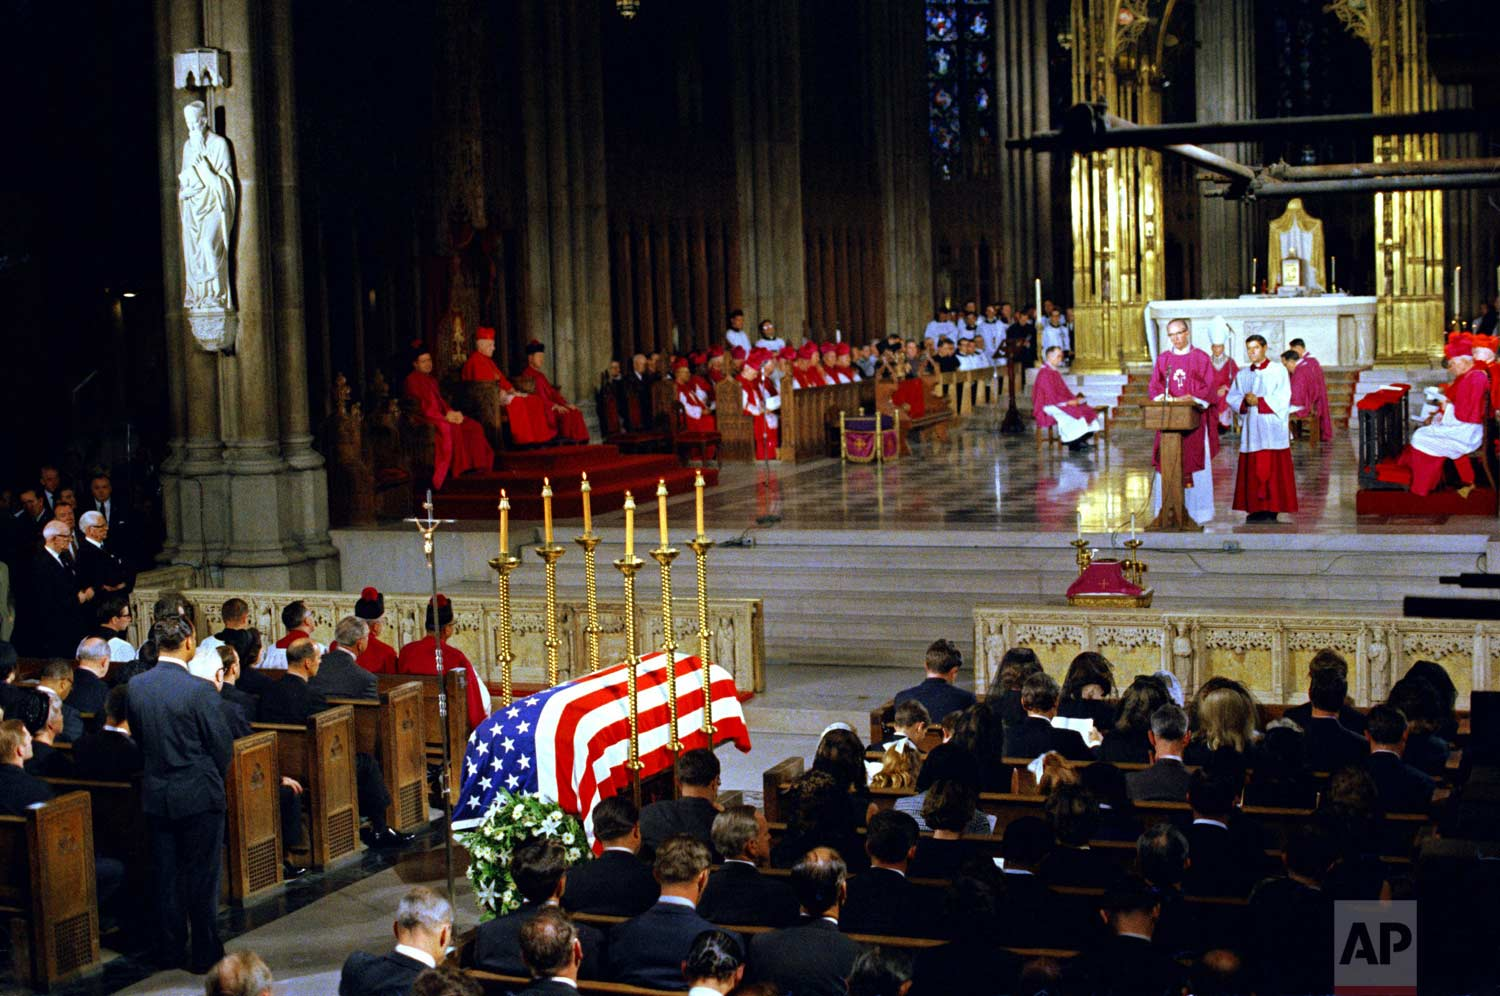 The funeral of Sen. Robert F. Kennedy is held at St. Patrick's Cathedral in New York, June 8, 1968. President Lyndon B. Johnson is seen in second row pew at left. (AP Photo)